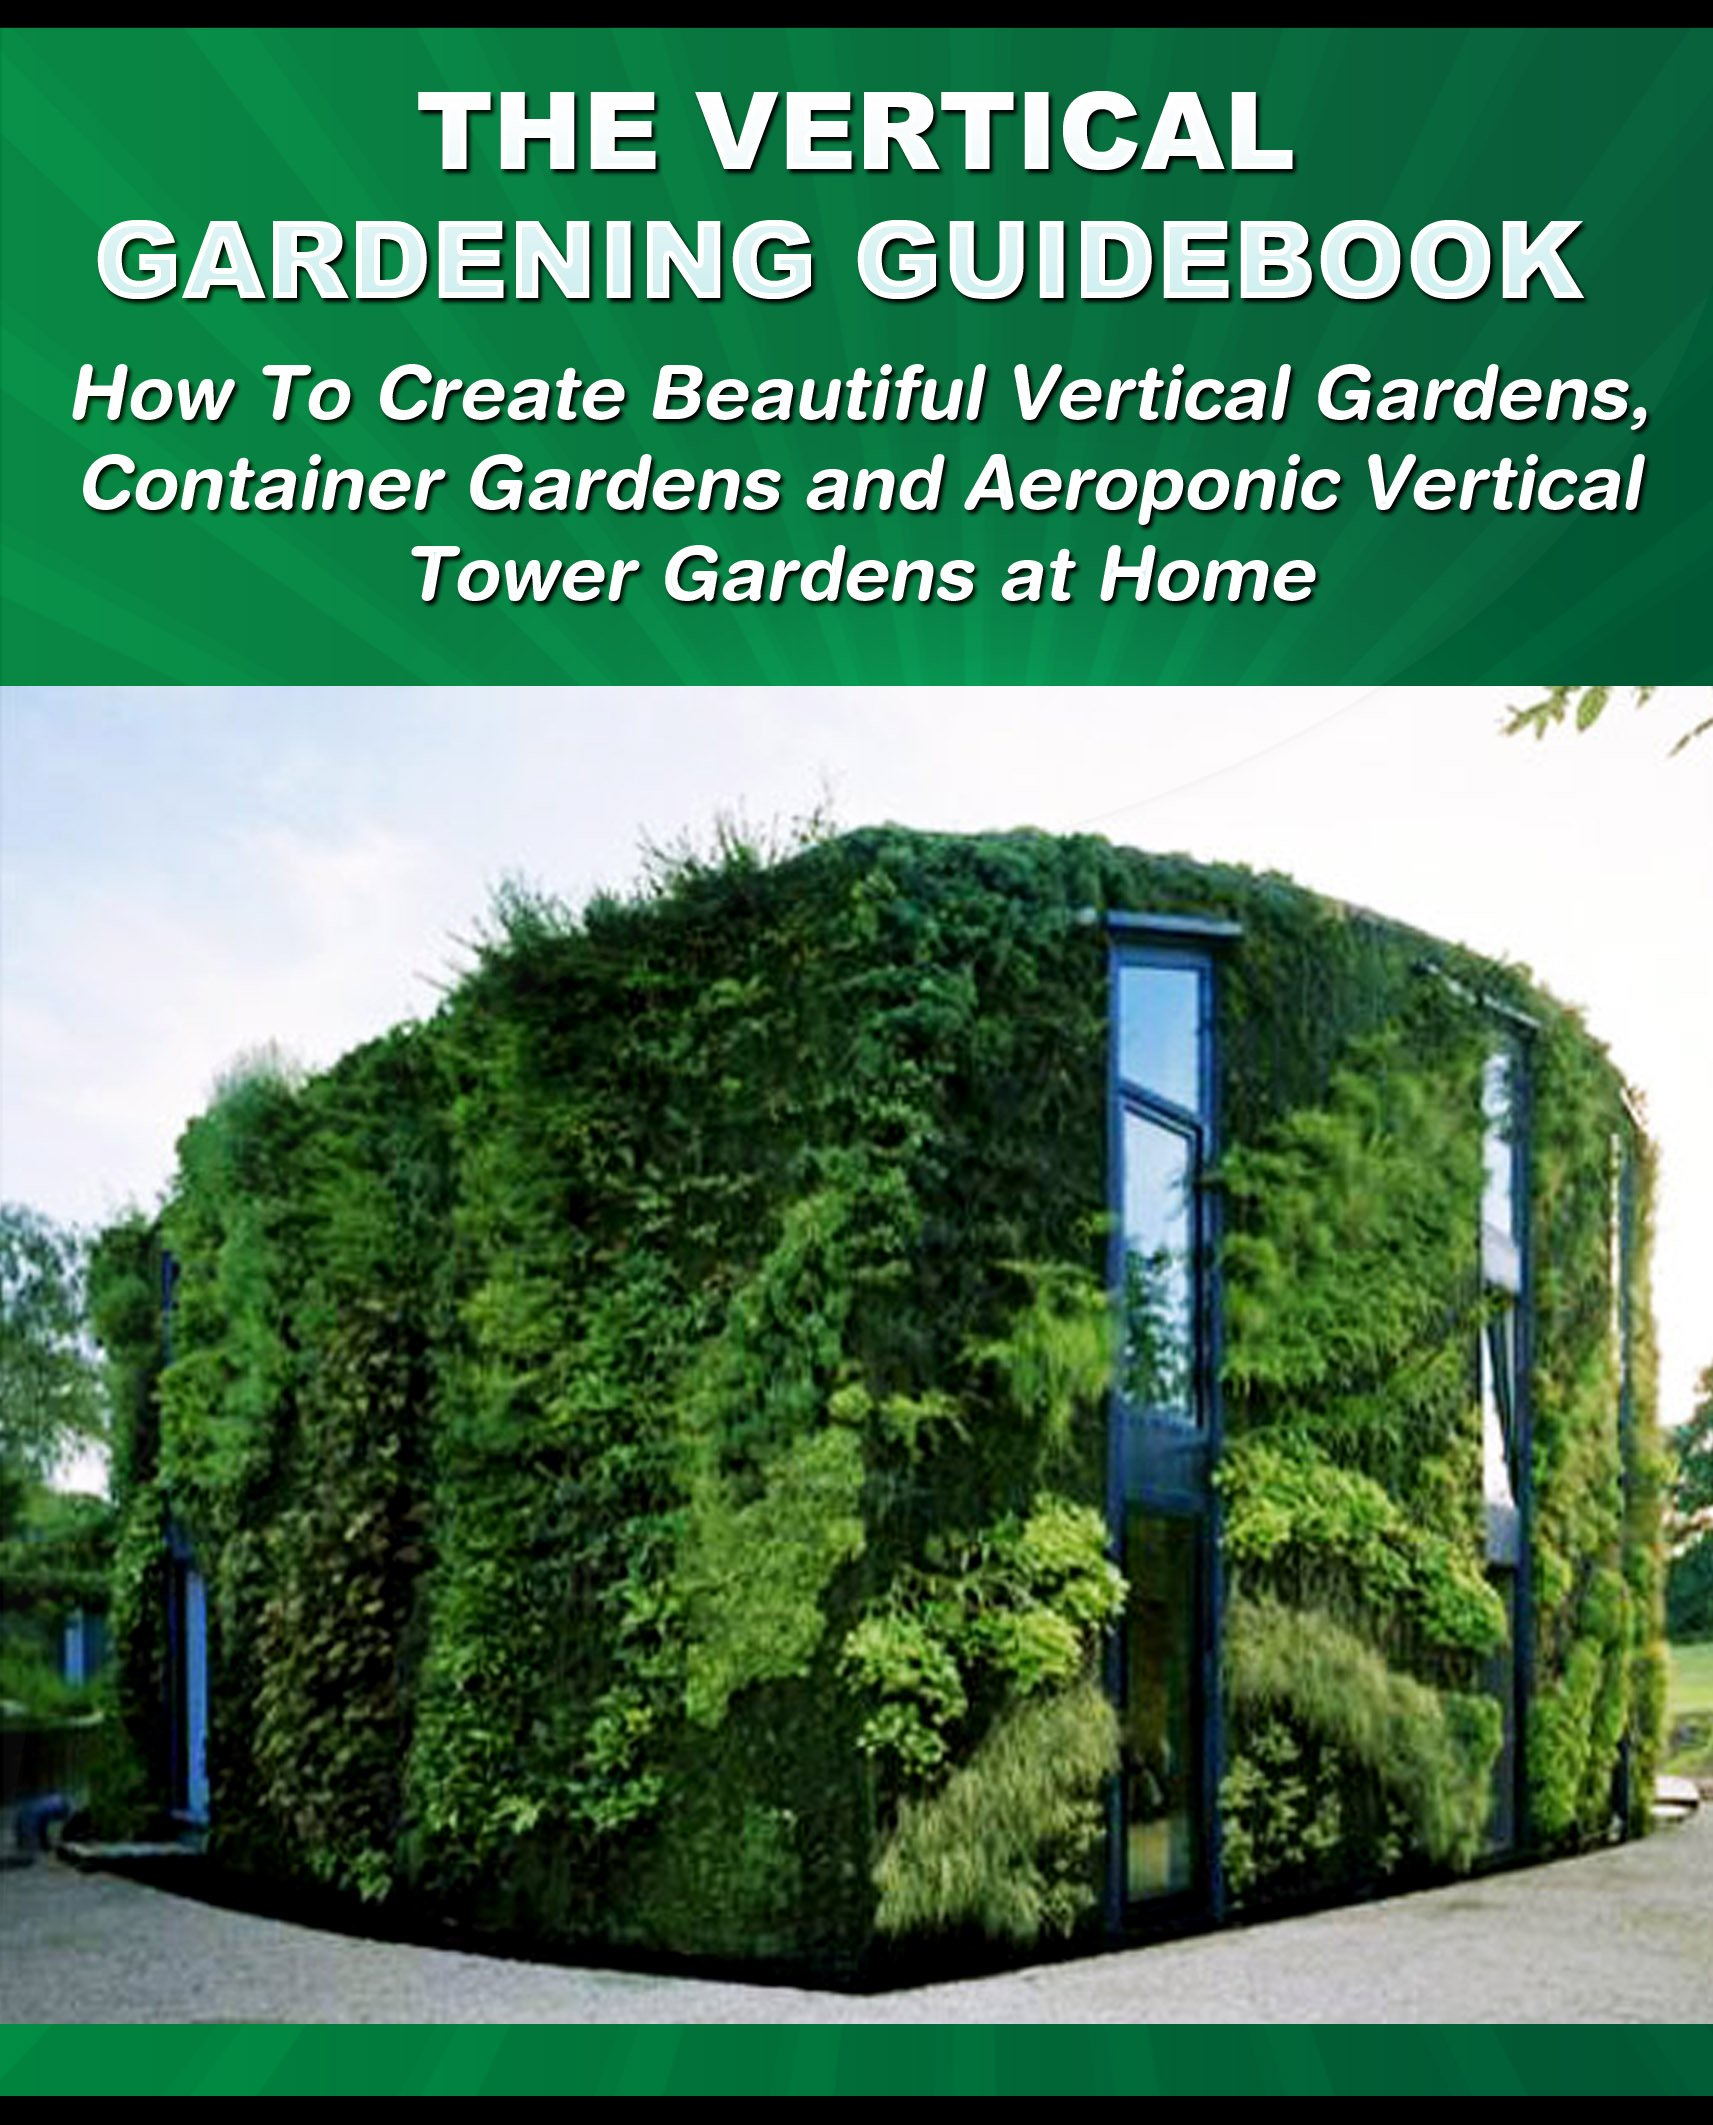 The Vertical Gardening Guidebook  How To Create Beautiful Vertical Gardens Container Gardens And Aeroponic Vertical Tower Gardens At Home  Gardening Guidebooks Book 1   English Edition